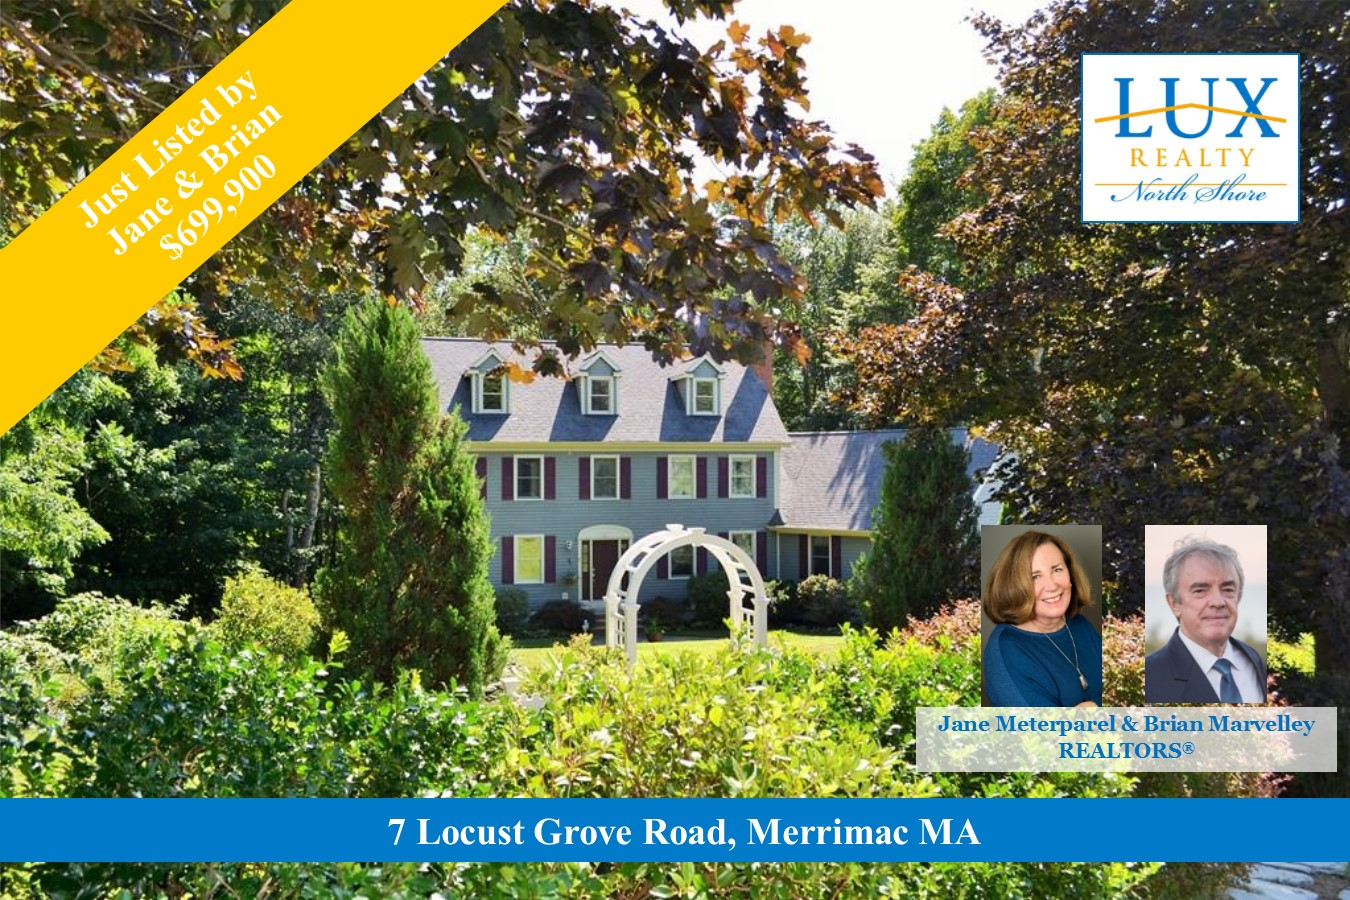 Merrimac MA Homes for Sale